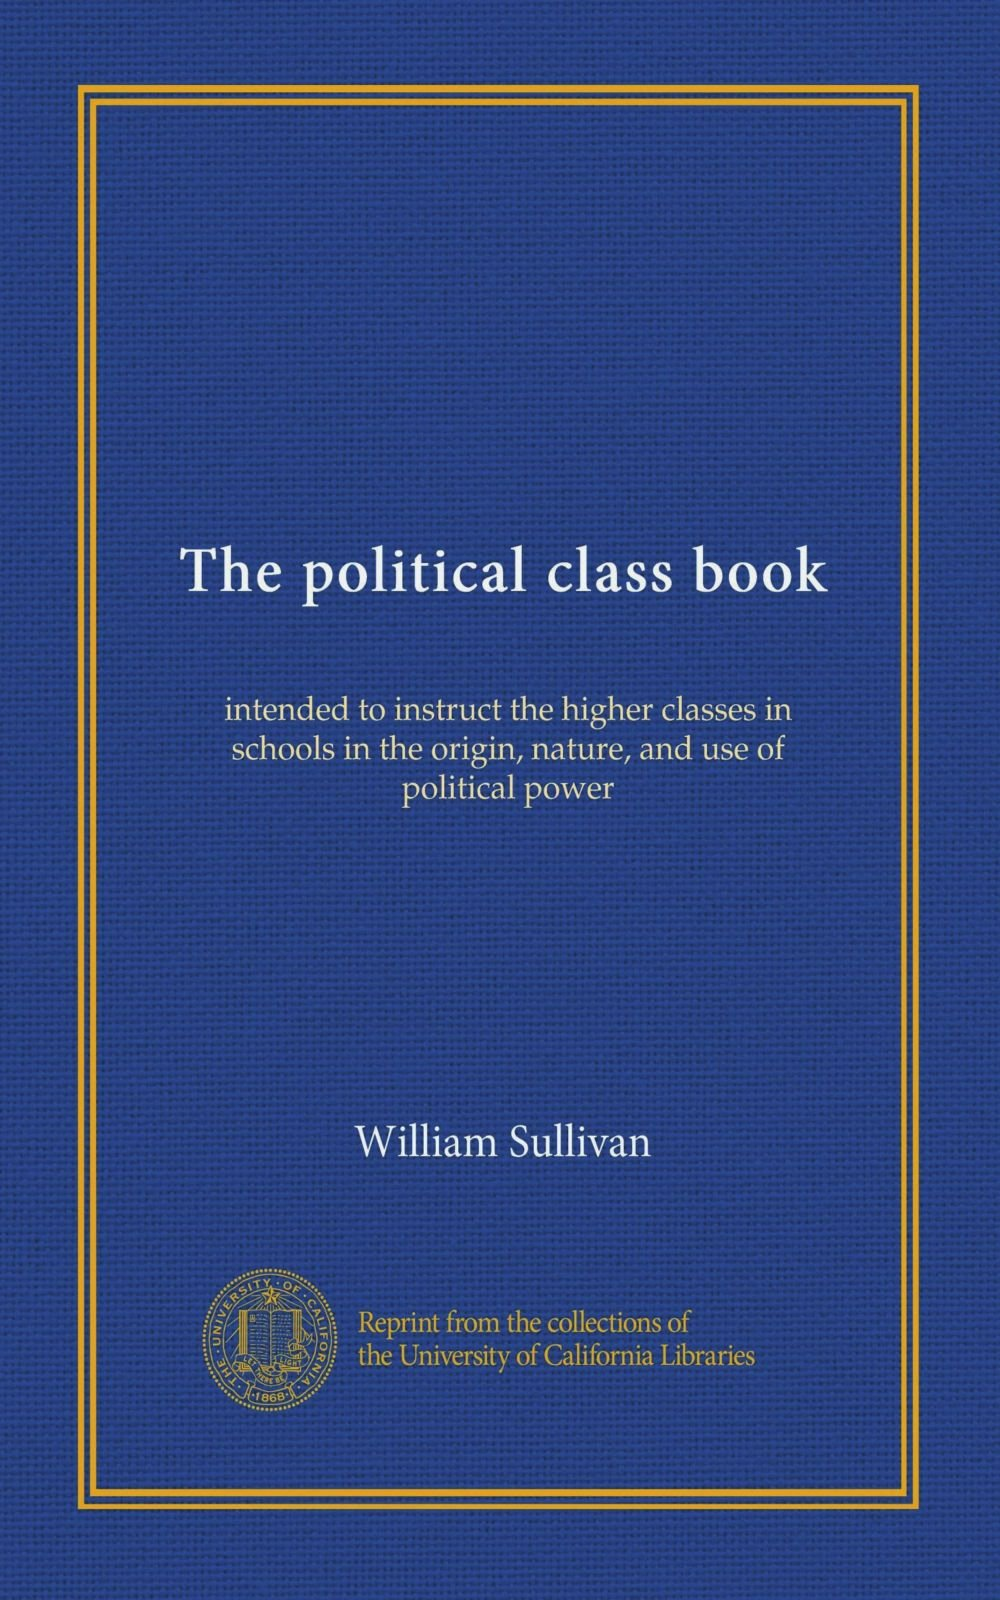 Download The political class book: intended to instruct the higher classes in schools in the origin, nature, and use of political power ebook